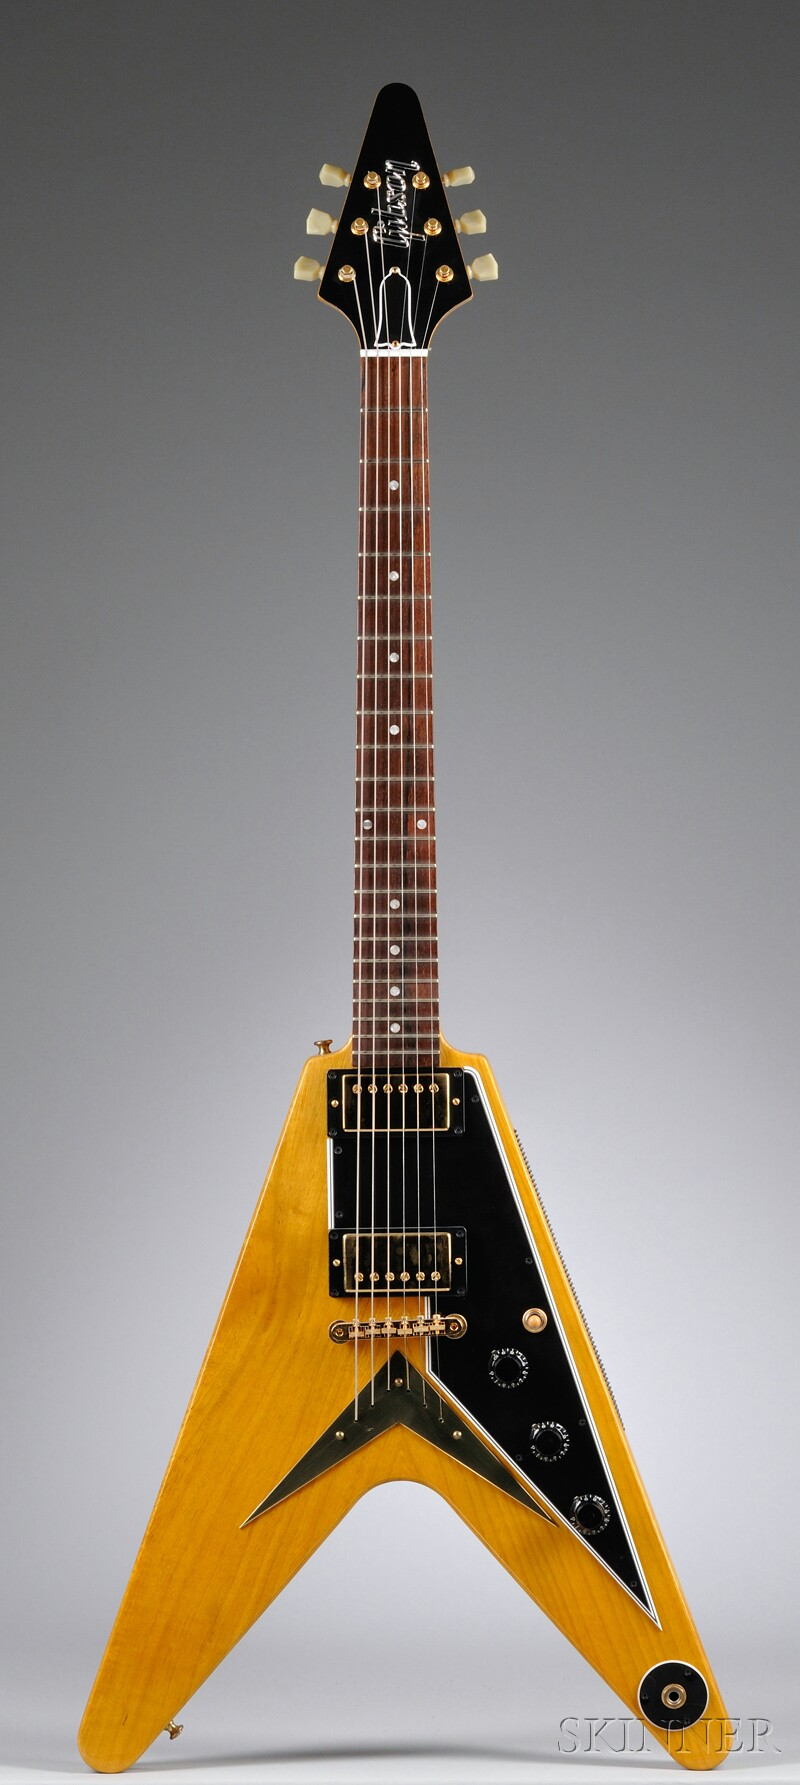 Three American Electric Guitars, Gibson Musical Instruments, Nashville, 2007